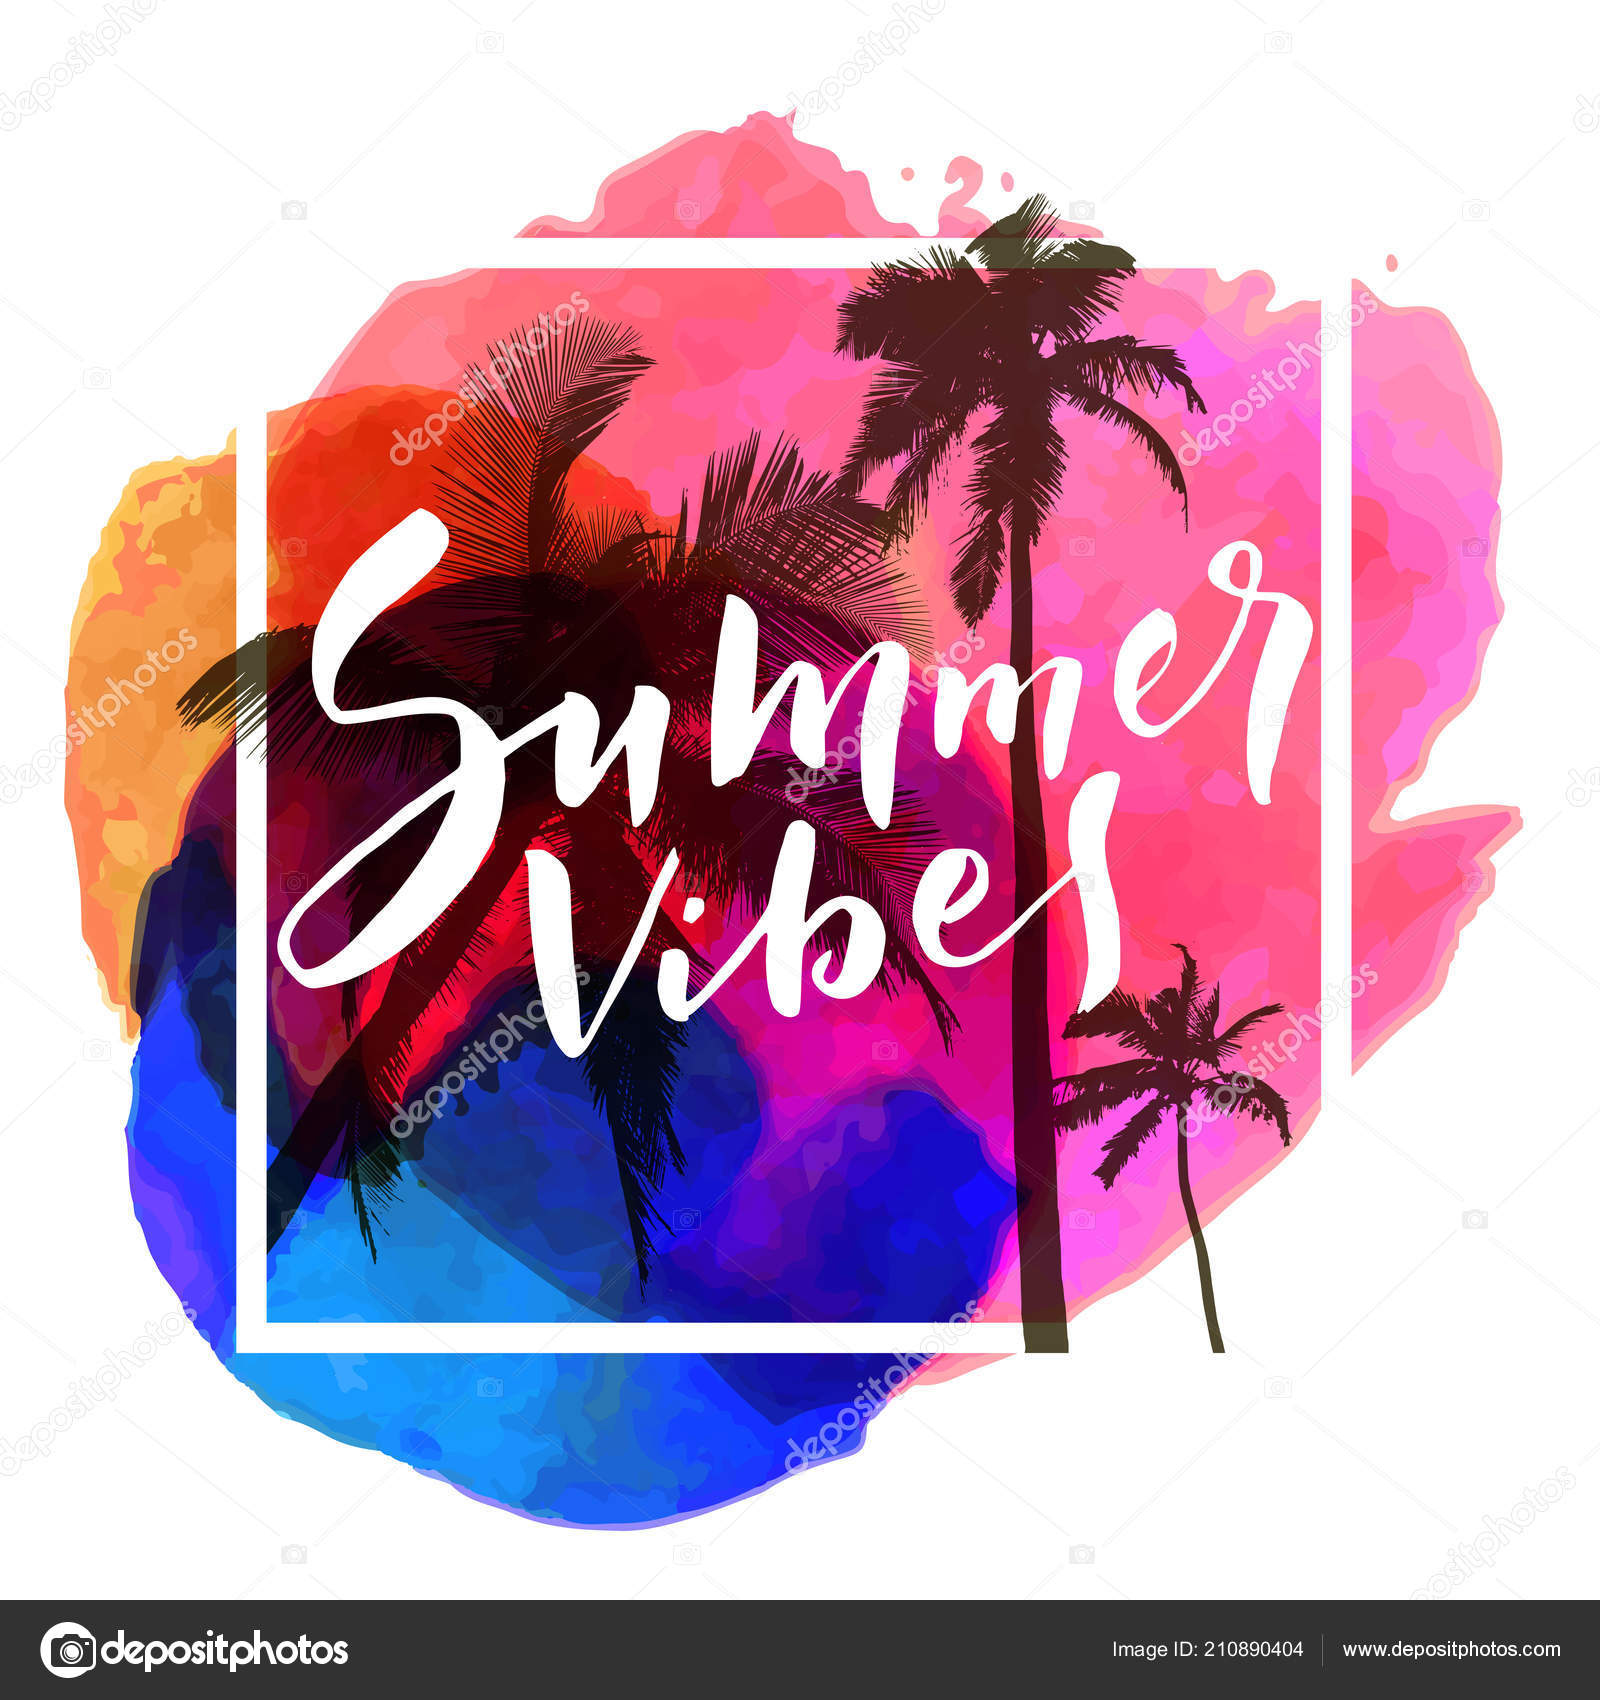 Sunsets and palm trees quotes | Summer Vibes Calligraphic ...